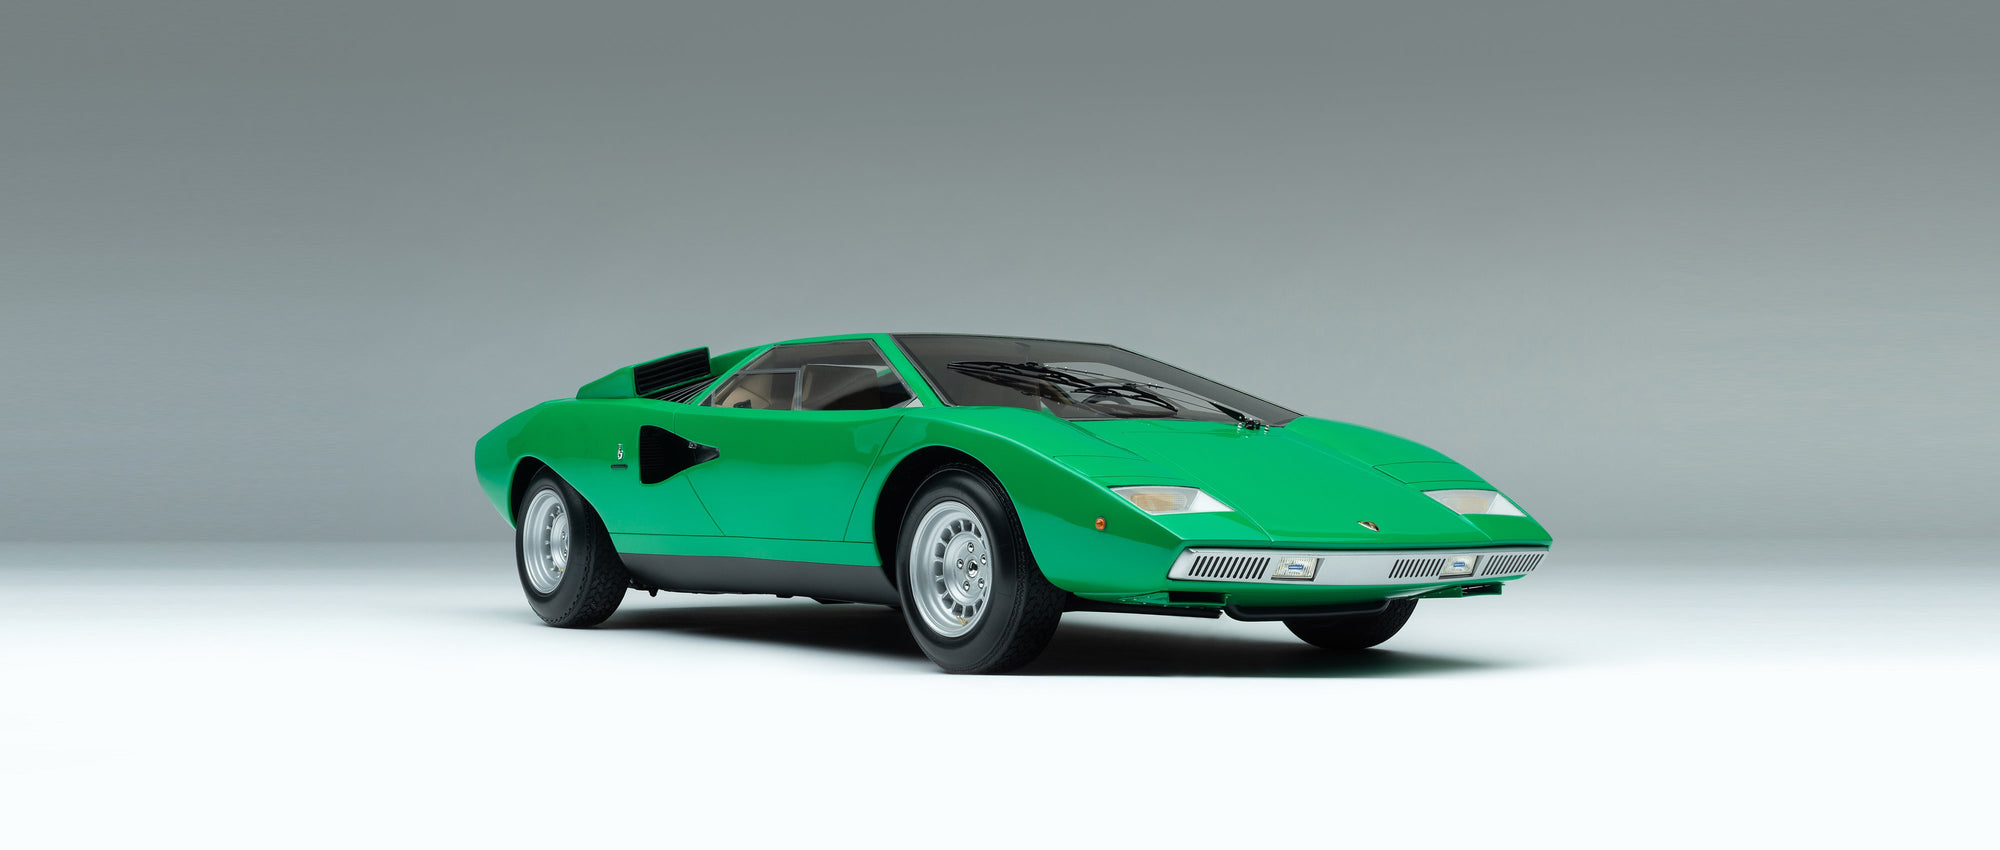 Lamborghini Countach LP400 (1974) \u2013 Amalgam Collection